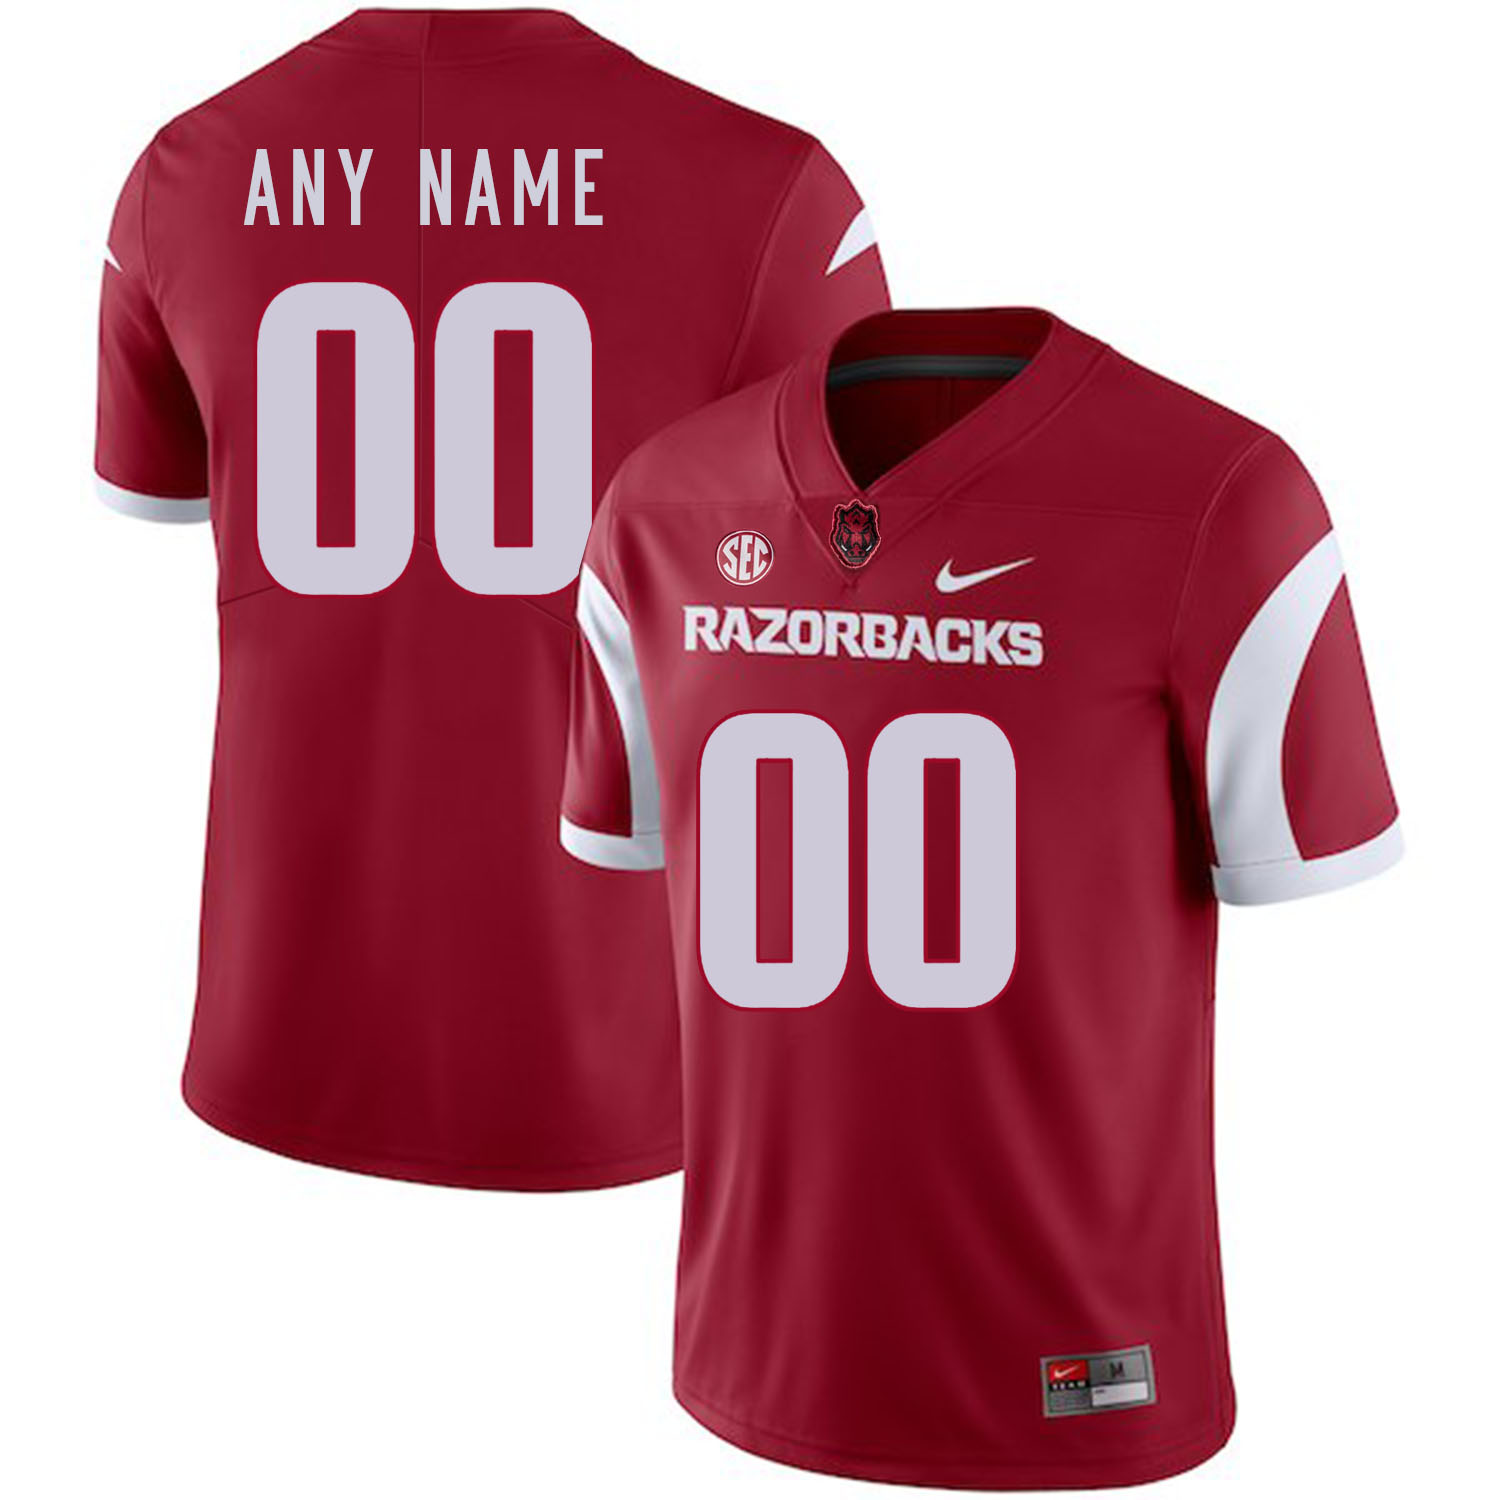 Arkansas Razorbacks Men's Customized Red College Football Jersey